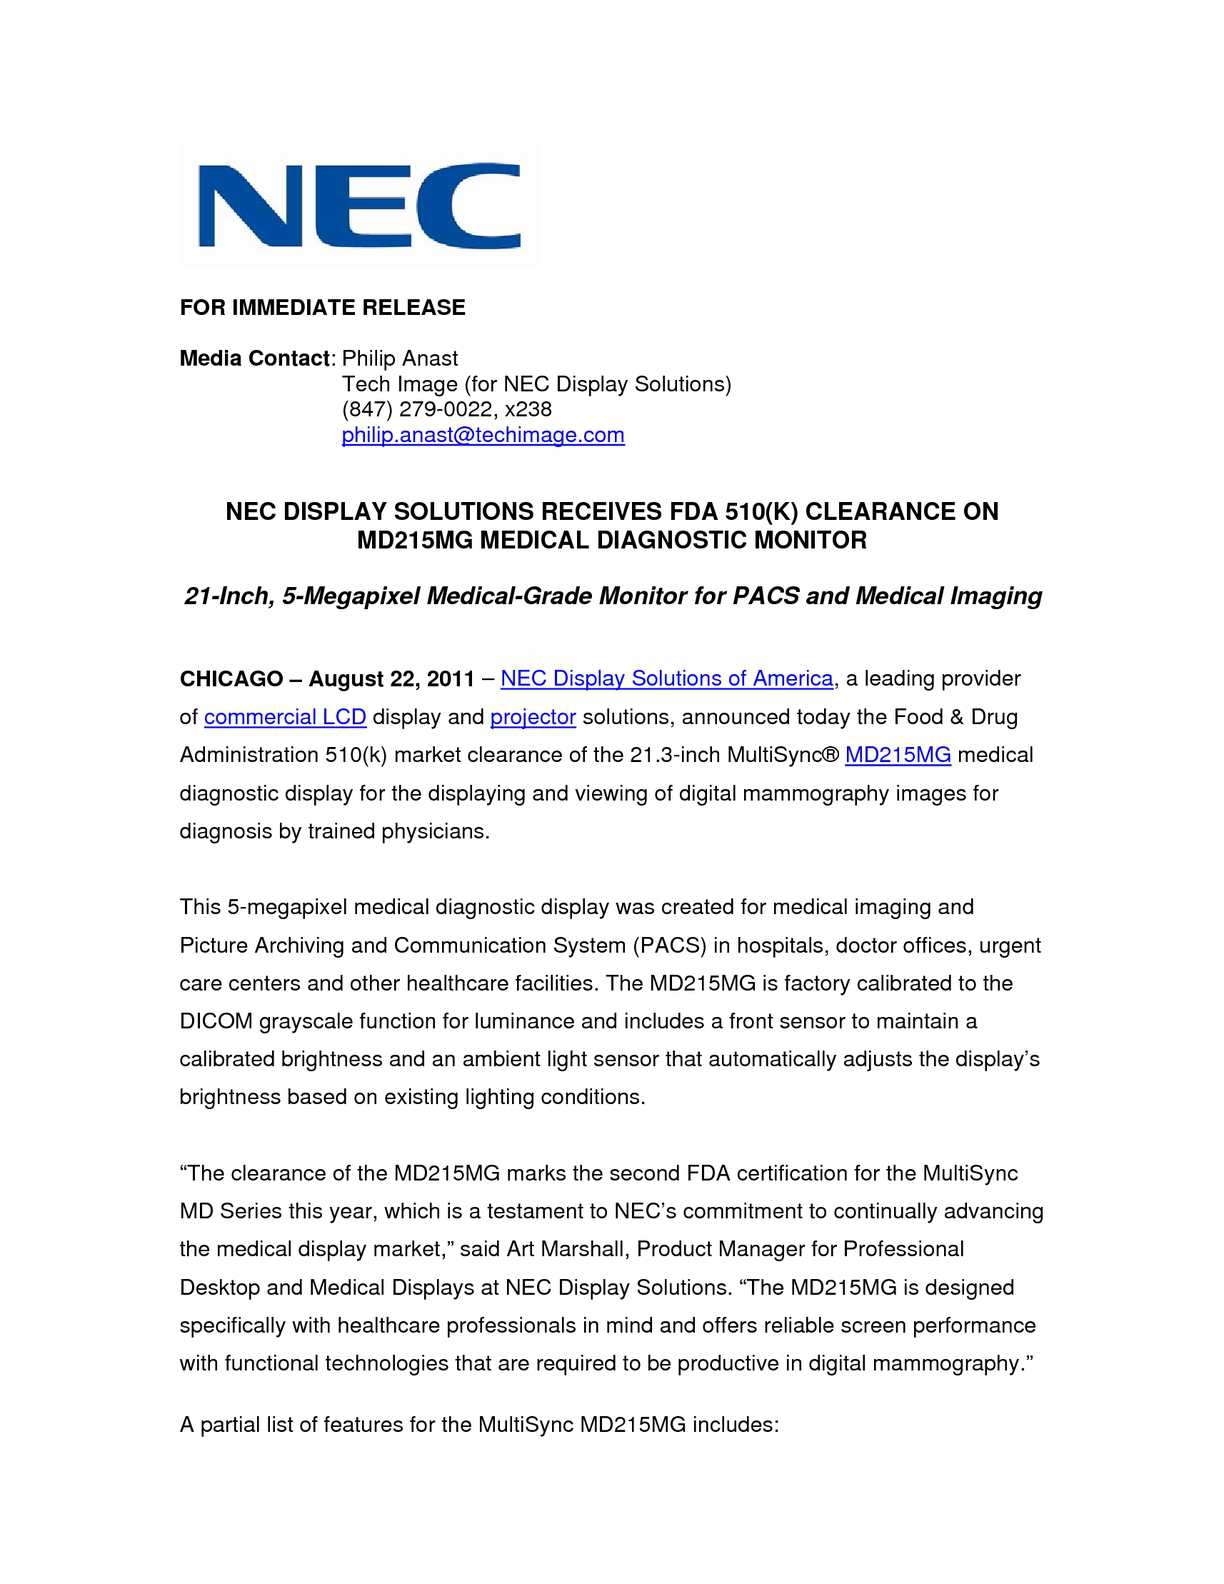 Calamo Nec Display Solutions Receives Fda 510k Clearance On